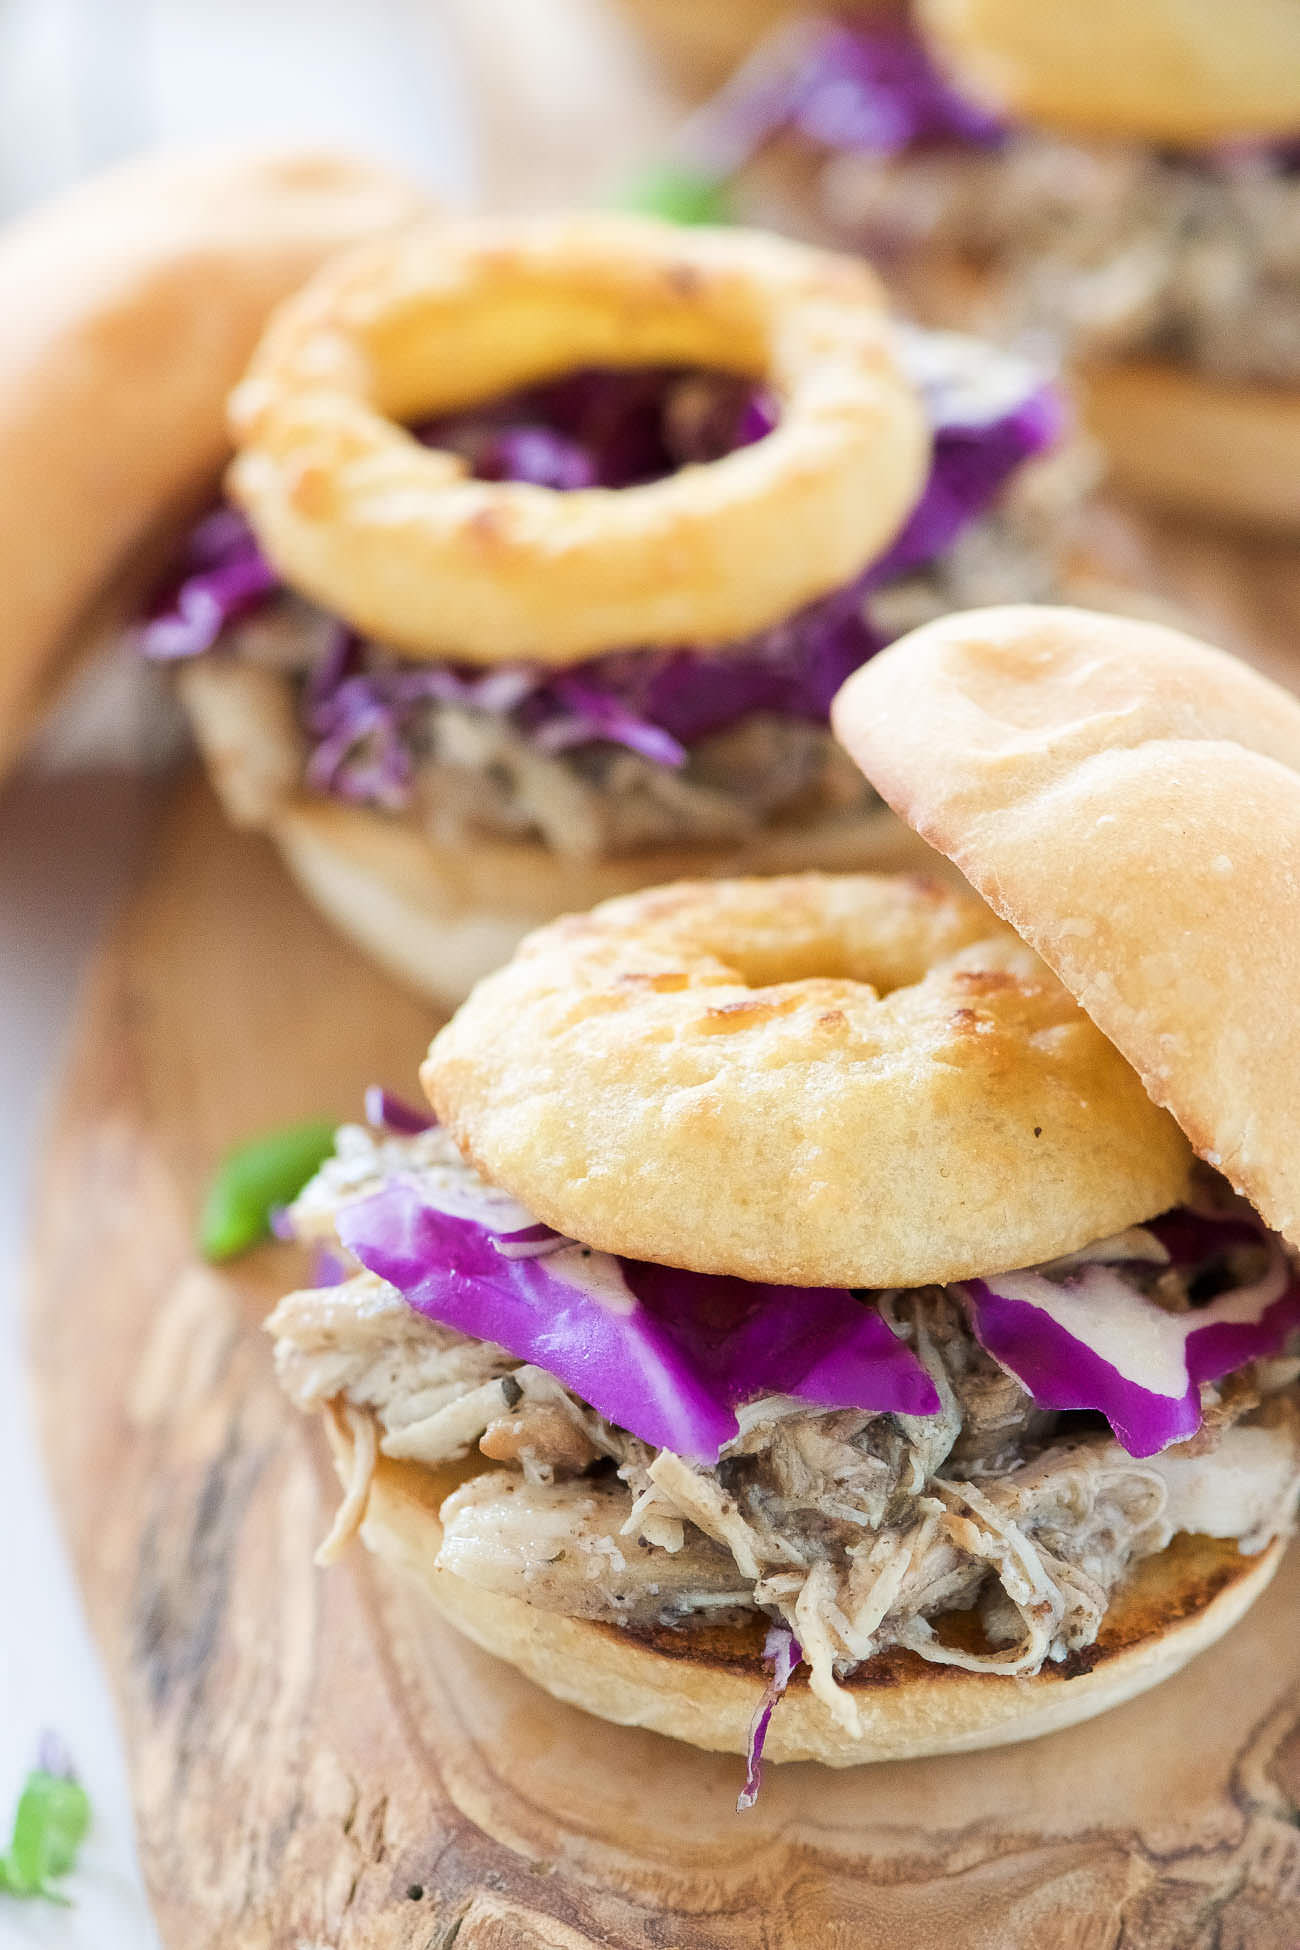 Brown Sugar Pulled Chicken Sandwiches have the most tender, slightly sweet chicken! The slow cooker makes dinner a breeze for these sliders that are topped with a tangy homemade honey mustard sauce and crispy onion rings. Perfect for dinner, get togethers or game day!